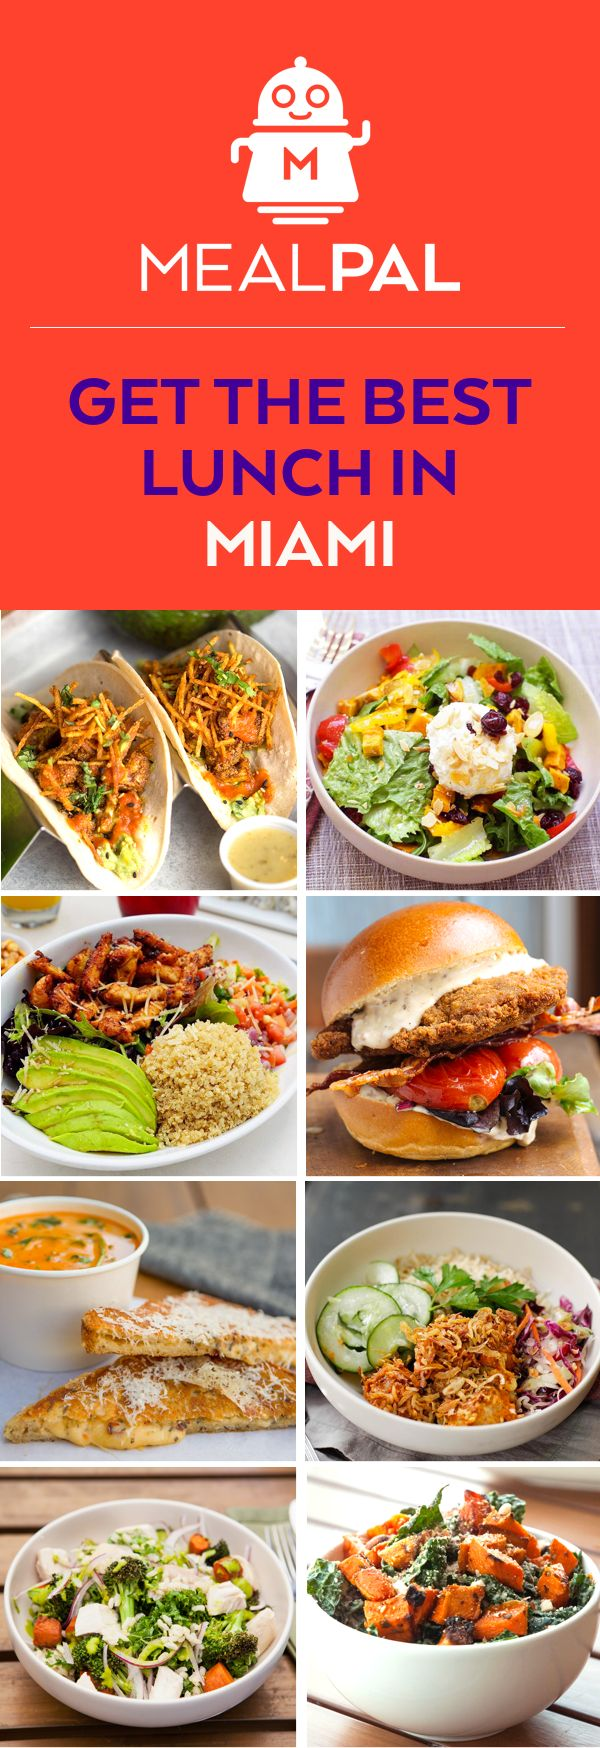 Get lunch for under $6 every day! We partner with over 50 restaurants in Miami, including Brickell Fresh, SuViche, La Mexicana Cantina & Grill, Bonding, Brother Jimmy's BBQ, and more! Reserve lunch daily and skip the line when you pick up. MealPal is members only - request an invite now to skip the waitlist!